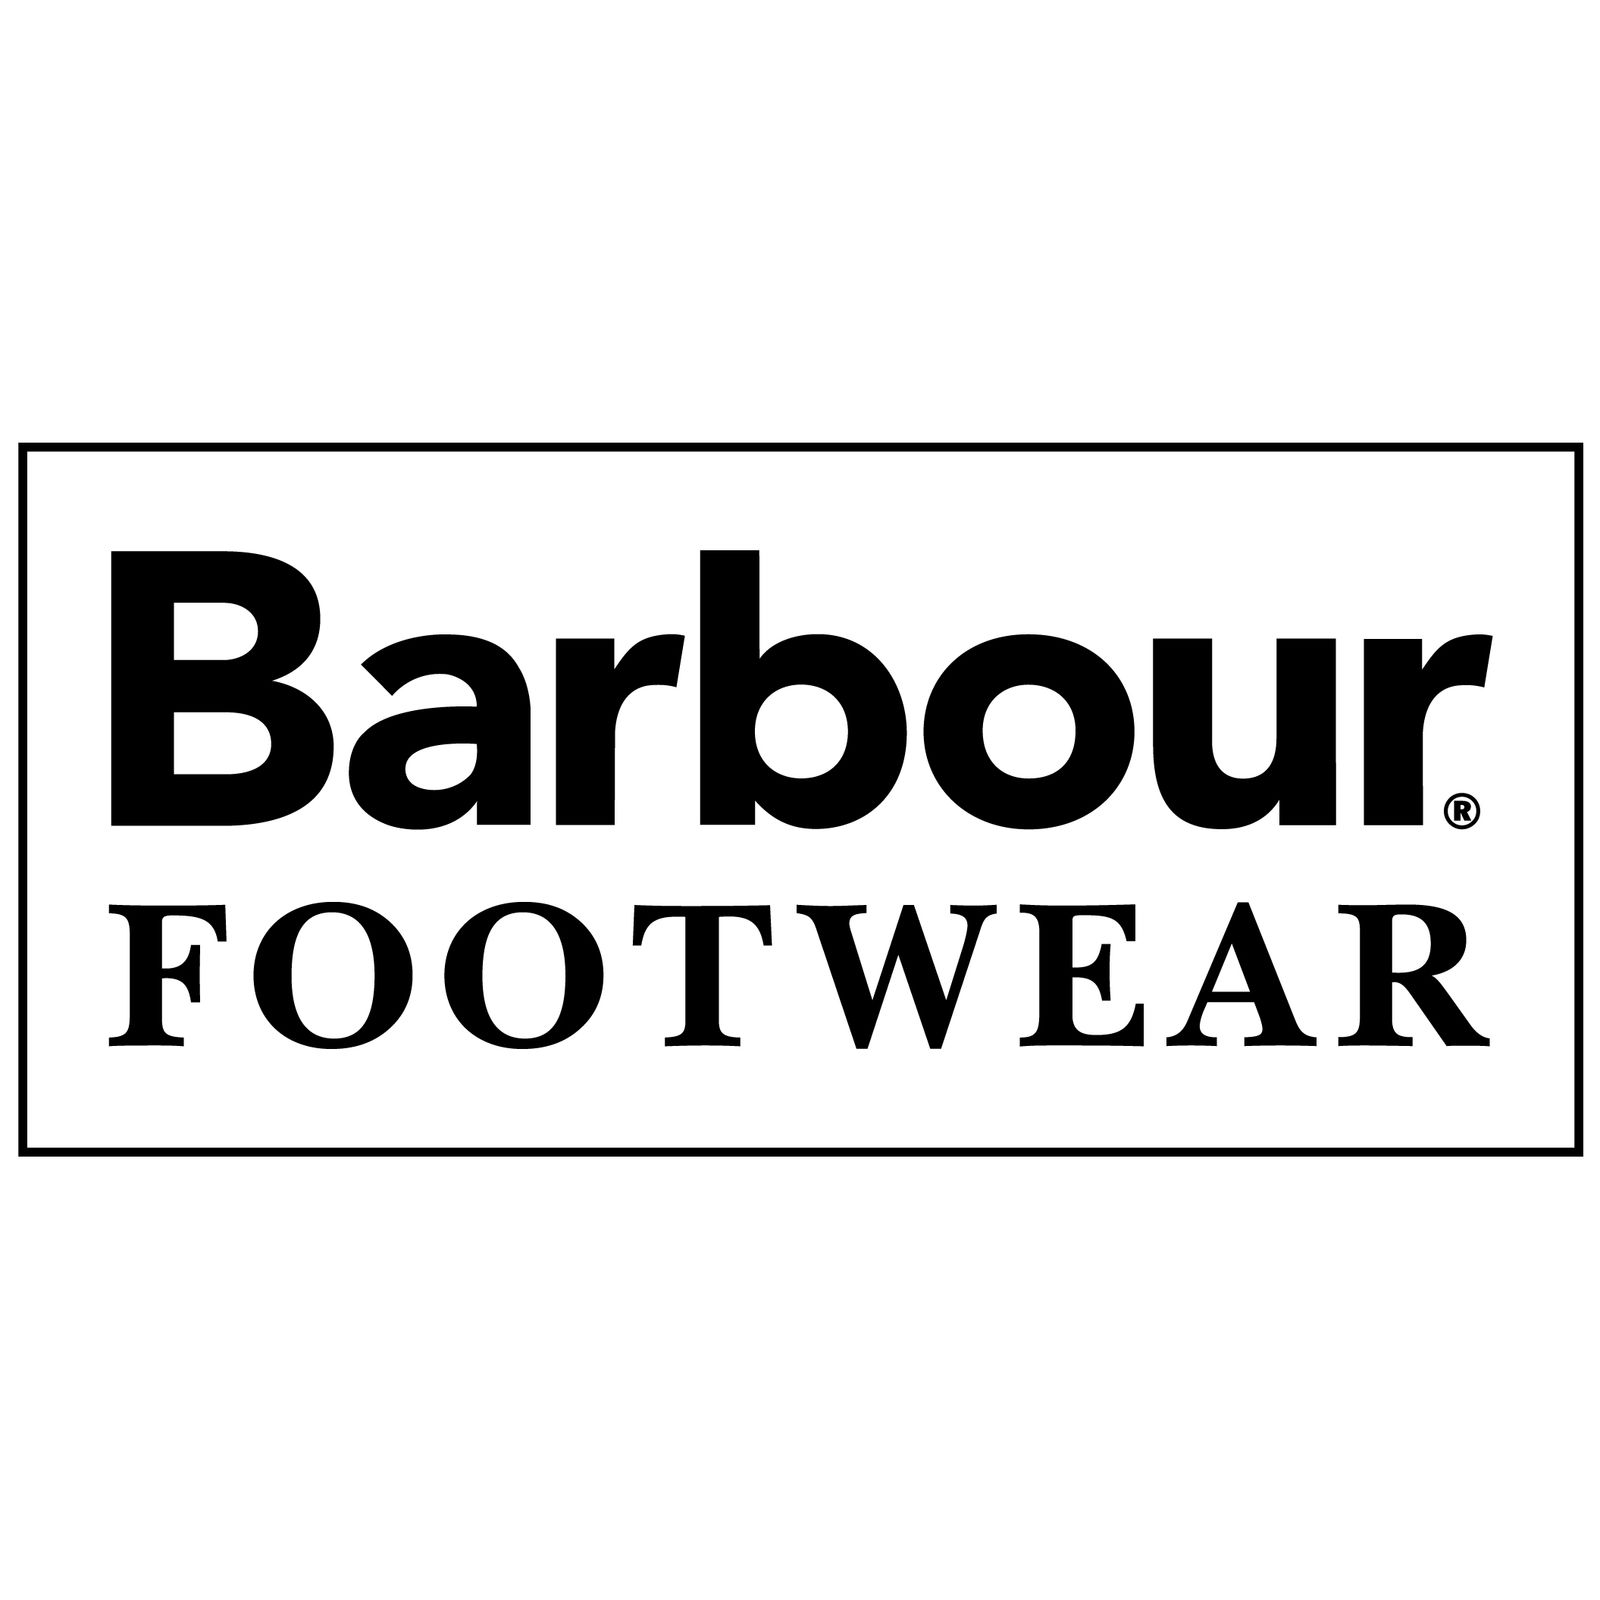 Barbour Footwear (Bild 1)